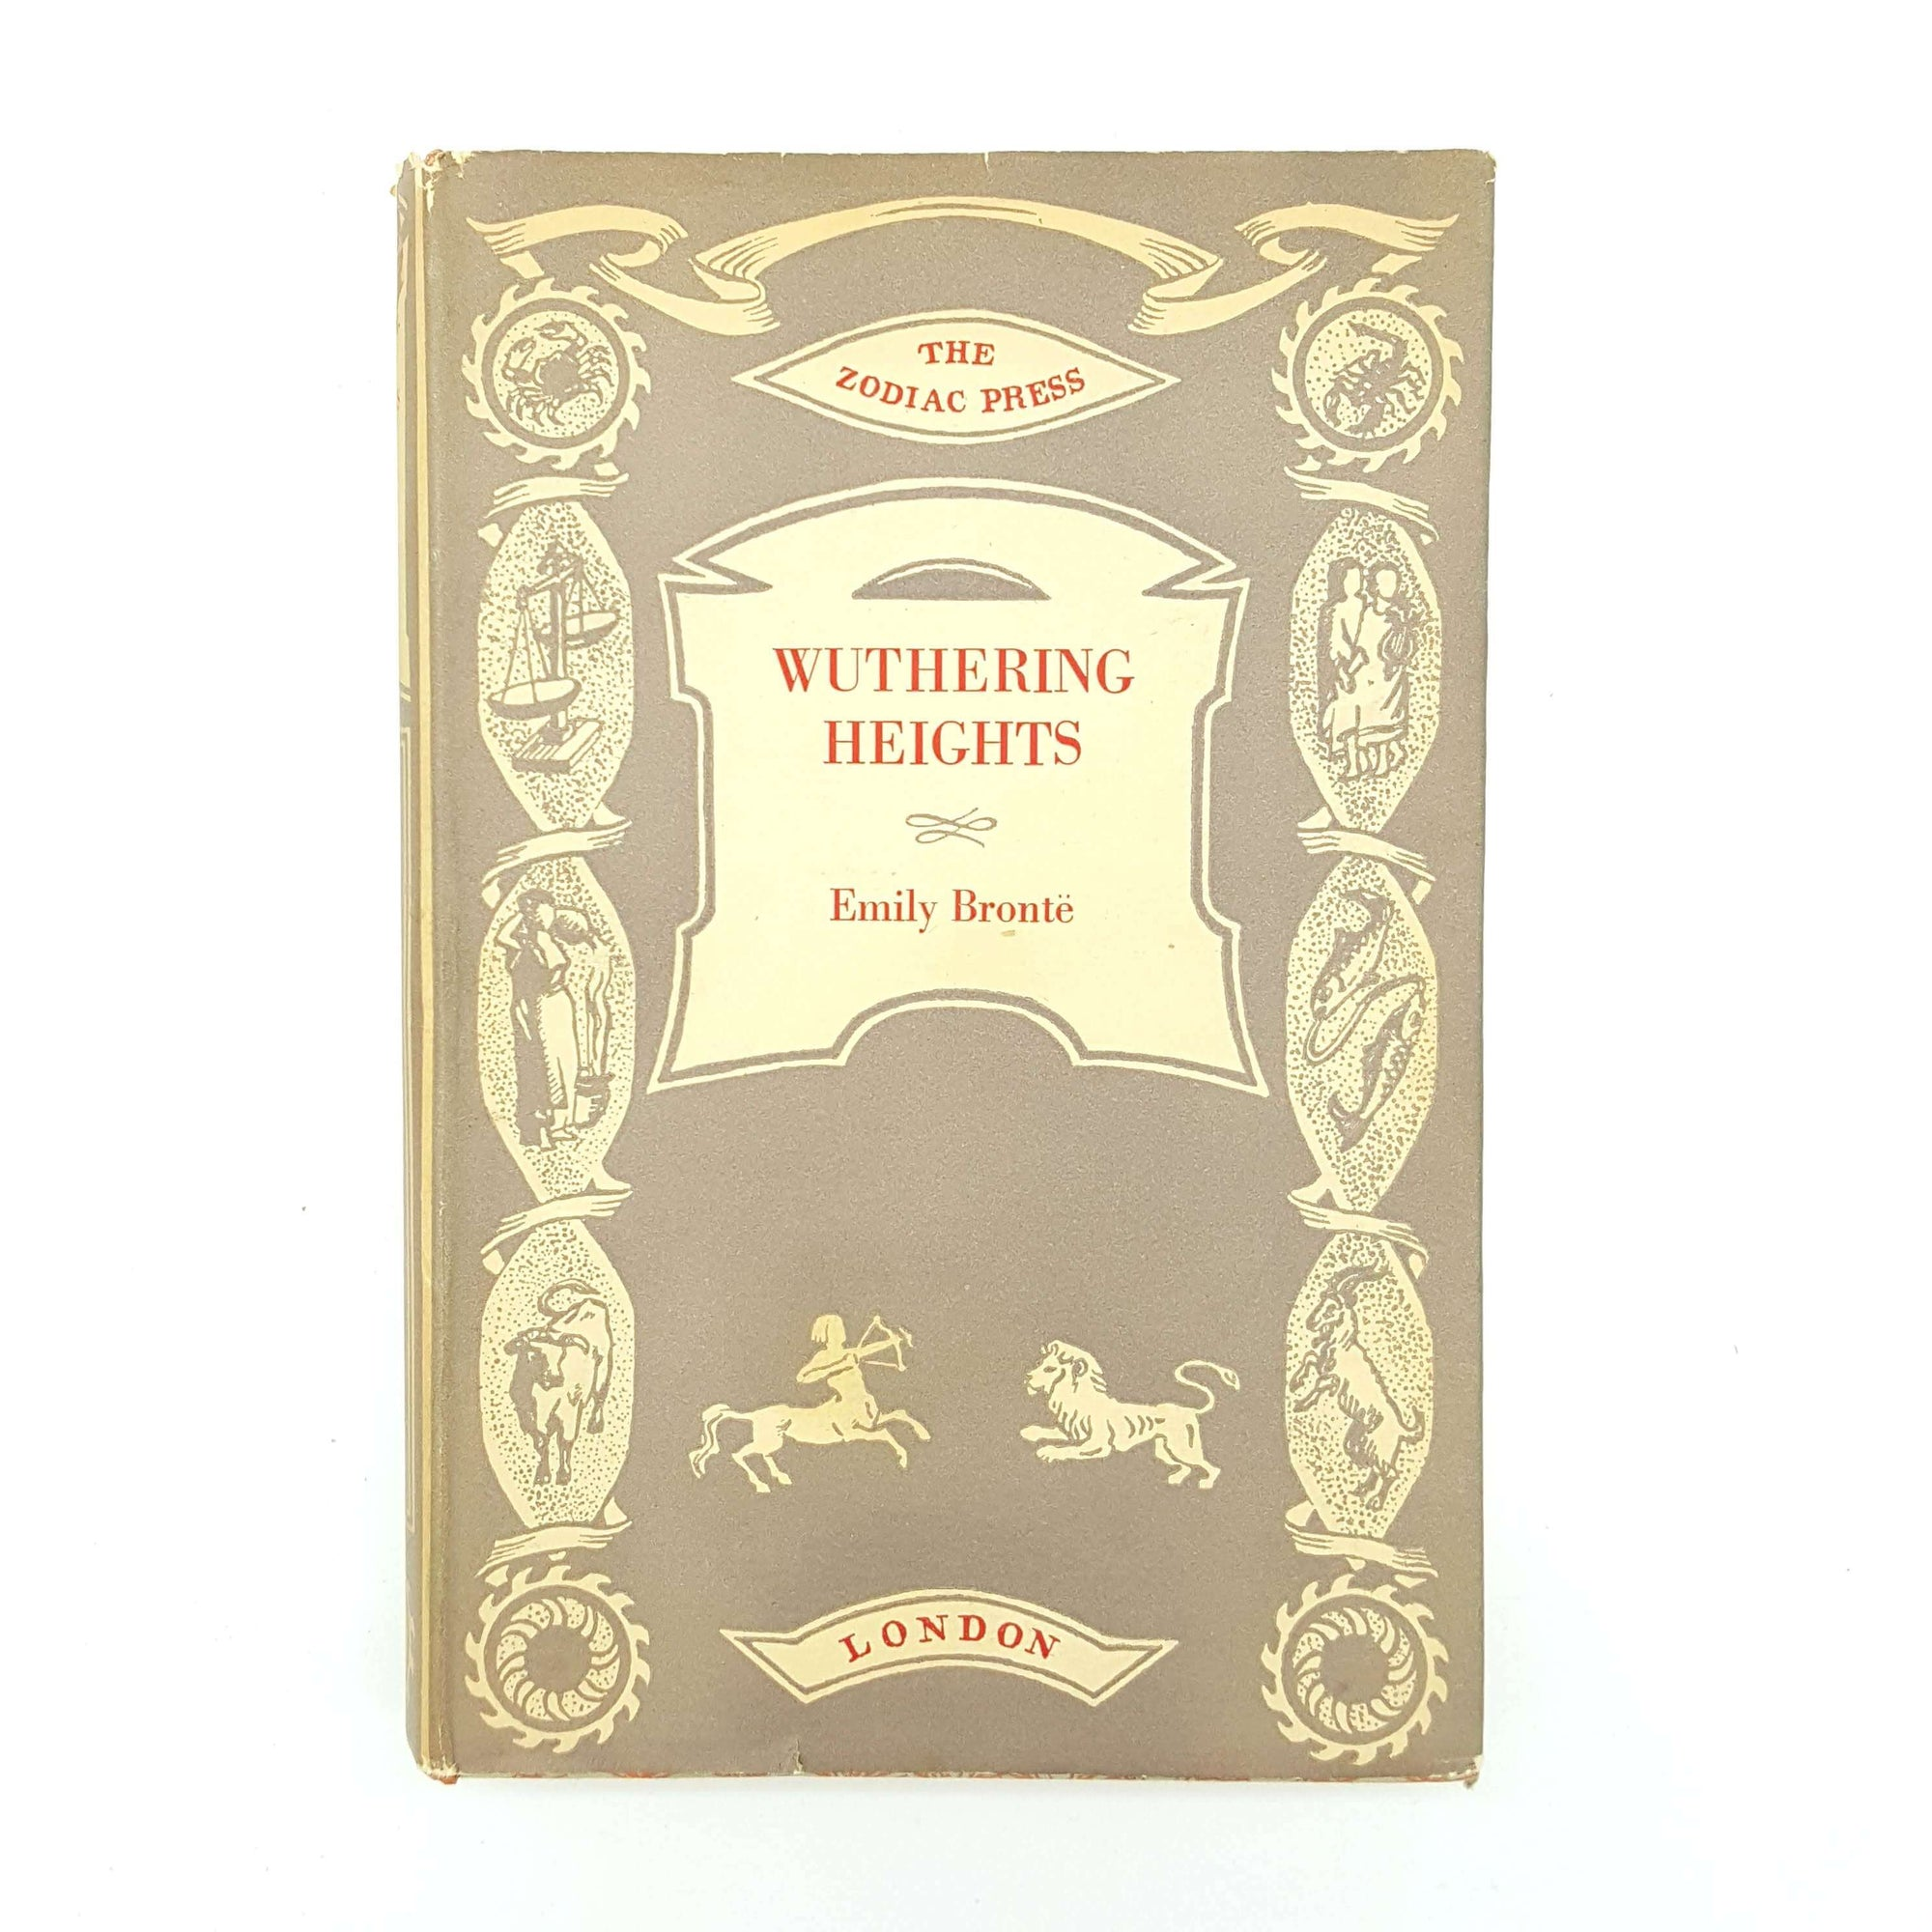 Wuthering Heights by Emily Brontë - Zodiac Press 1947 Country House Library